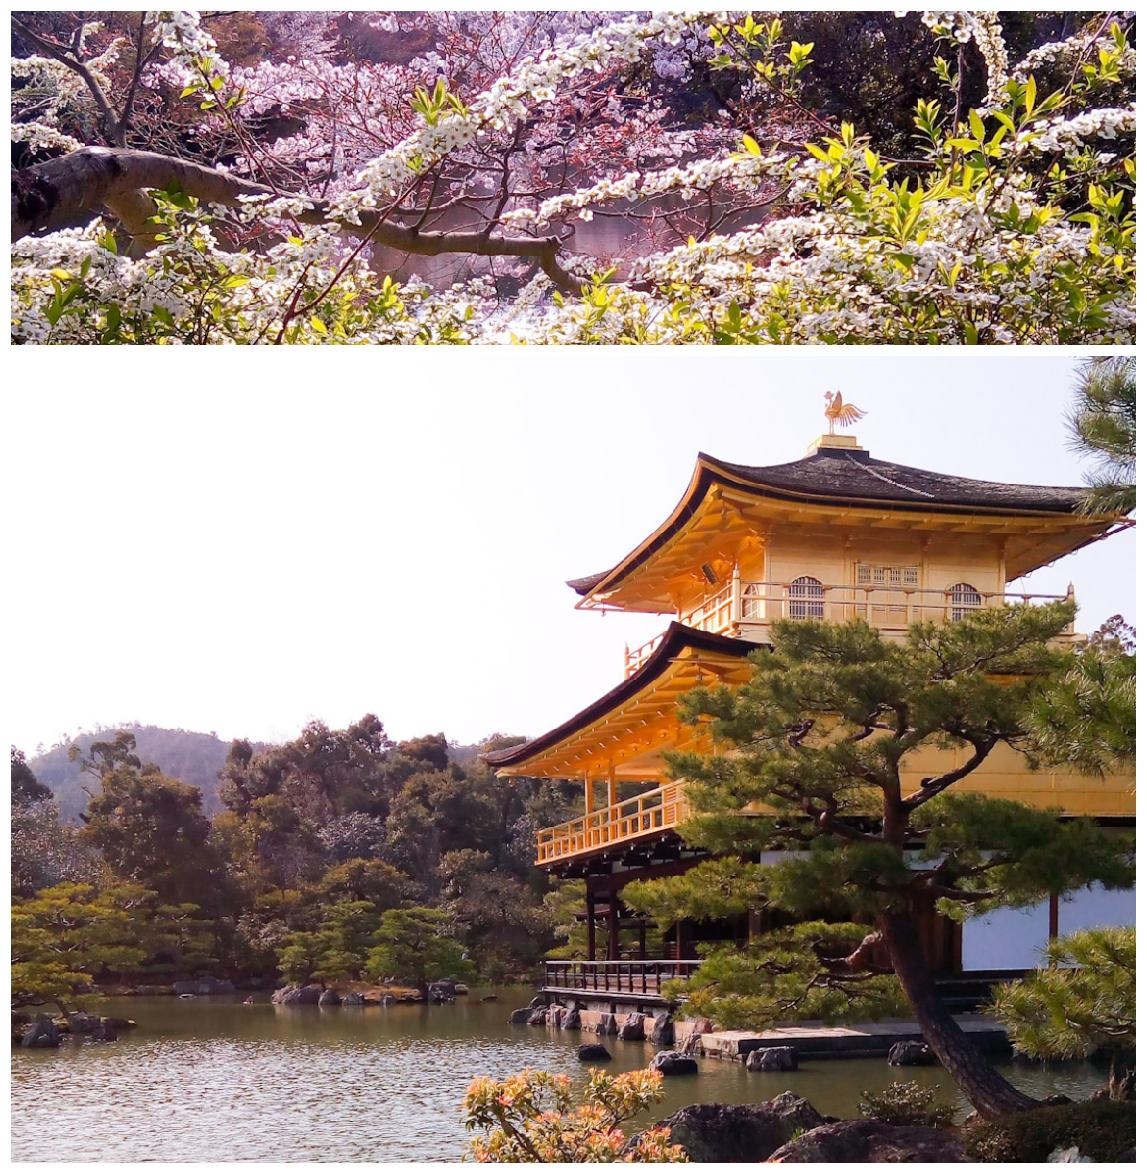 Urban Photos - Kita Ward, Kyoto, Japan. 'Kinkaku-ji.' Kinkakuji 'Temple of the Golden Pavilion' was built in 1397 and reconstructed in 1955, after a novice monk burned it down. The Zen Buddhist Temple is one of Japan's biggest tourist attractions. So be warned, it gets a lot of visitors, which does lessen the visitor's experience. As I mentioned before, especially in Kyoto, the main tourist attractions can be extremely busy, but don't let influence your Kyoto experience. There are so many less tourist filled wonders to be found. I would recommend also organically exploring the city, rather than just following the common checklist of a small number of popular sites. After all the city does boast 2000 religious sites. sketchbookexplorer.com @davidasutton @sketchbookexplorer Facebook.com/davidanthonysutton #japan #kyoto #kitaward #kinkakuji #travel #travelblog #photography #cheeryblossom #cherryblossomseason